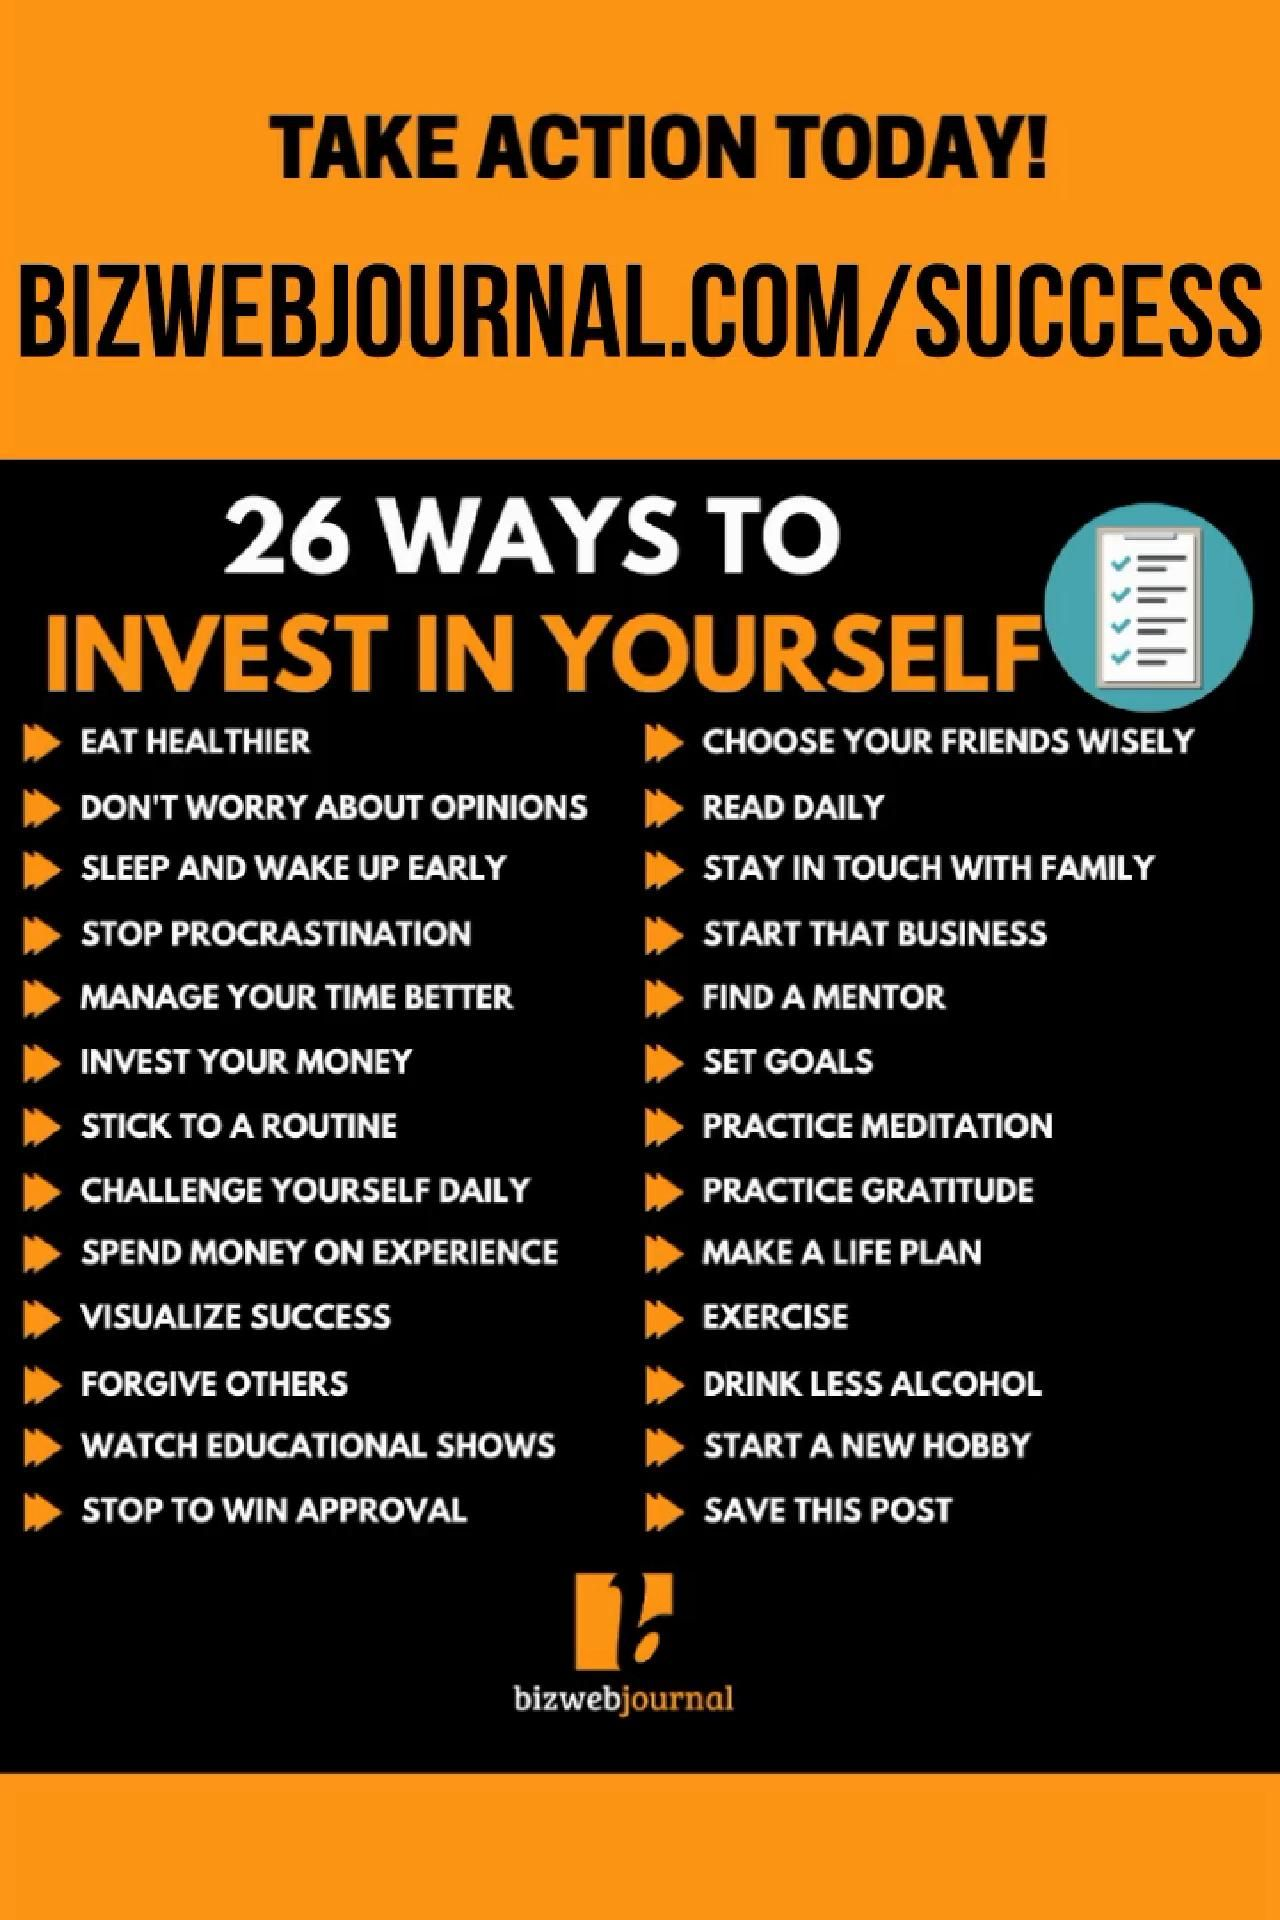 26 Ways To Invest In Yourself